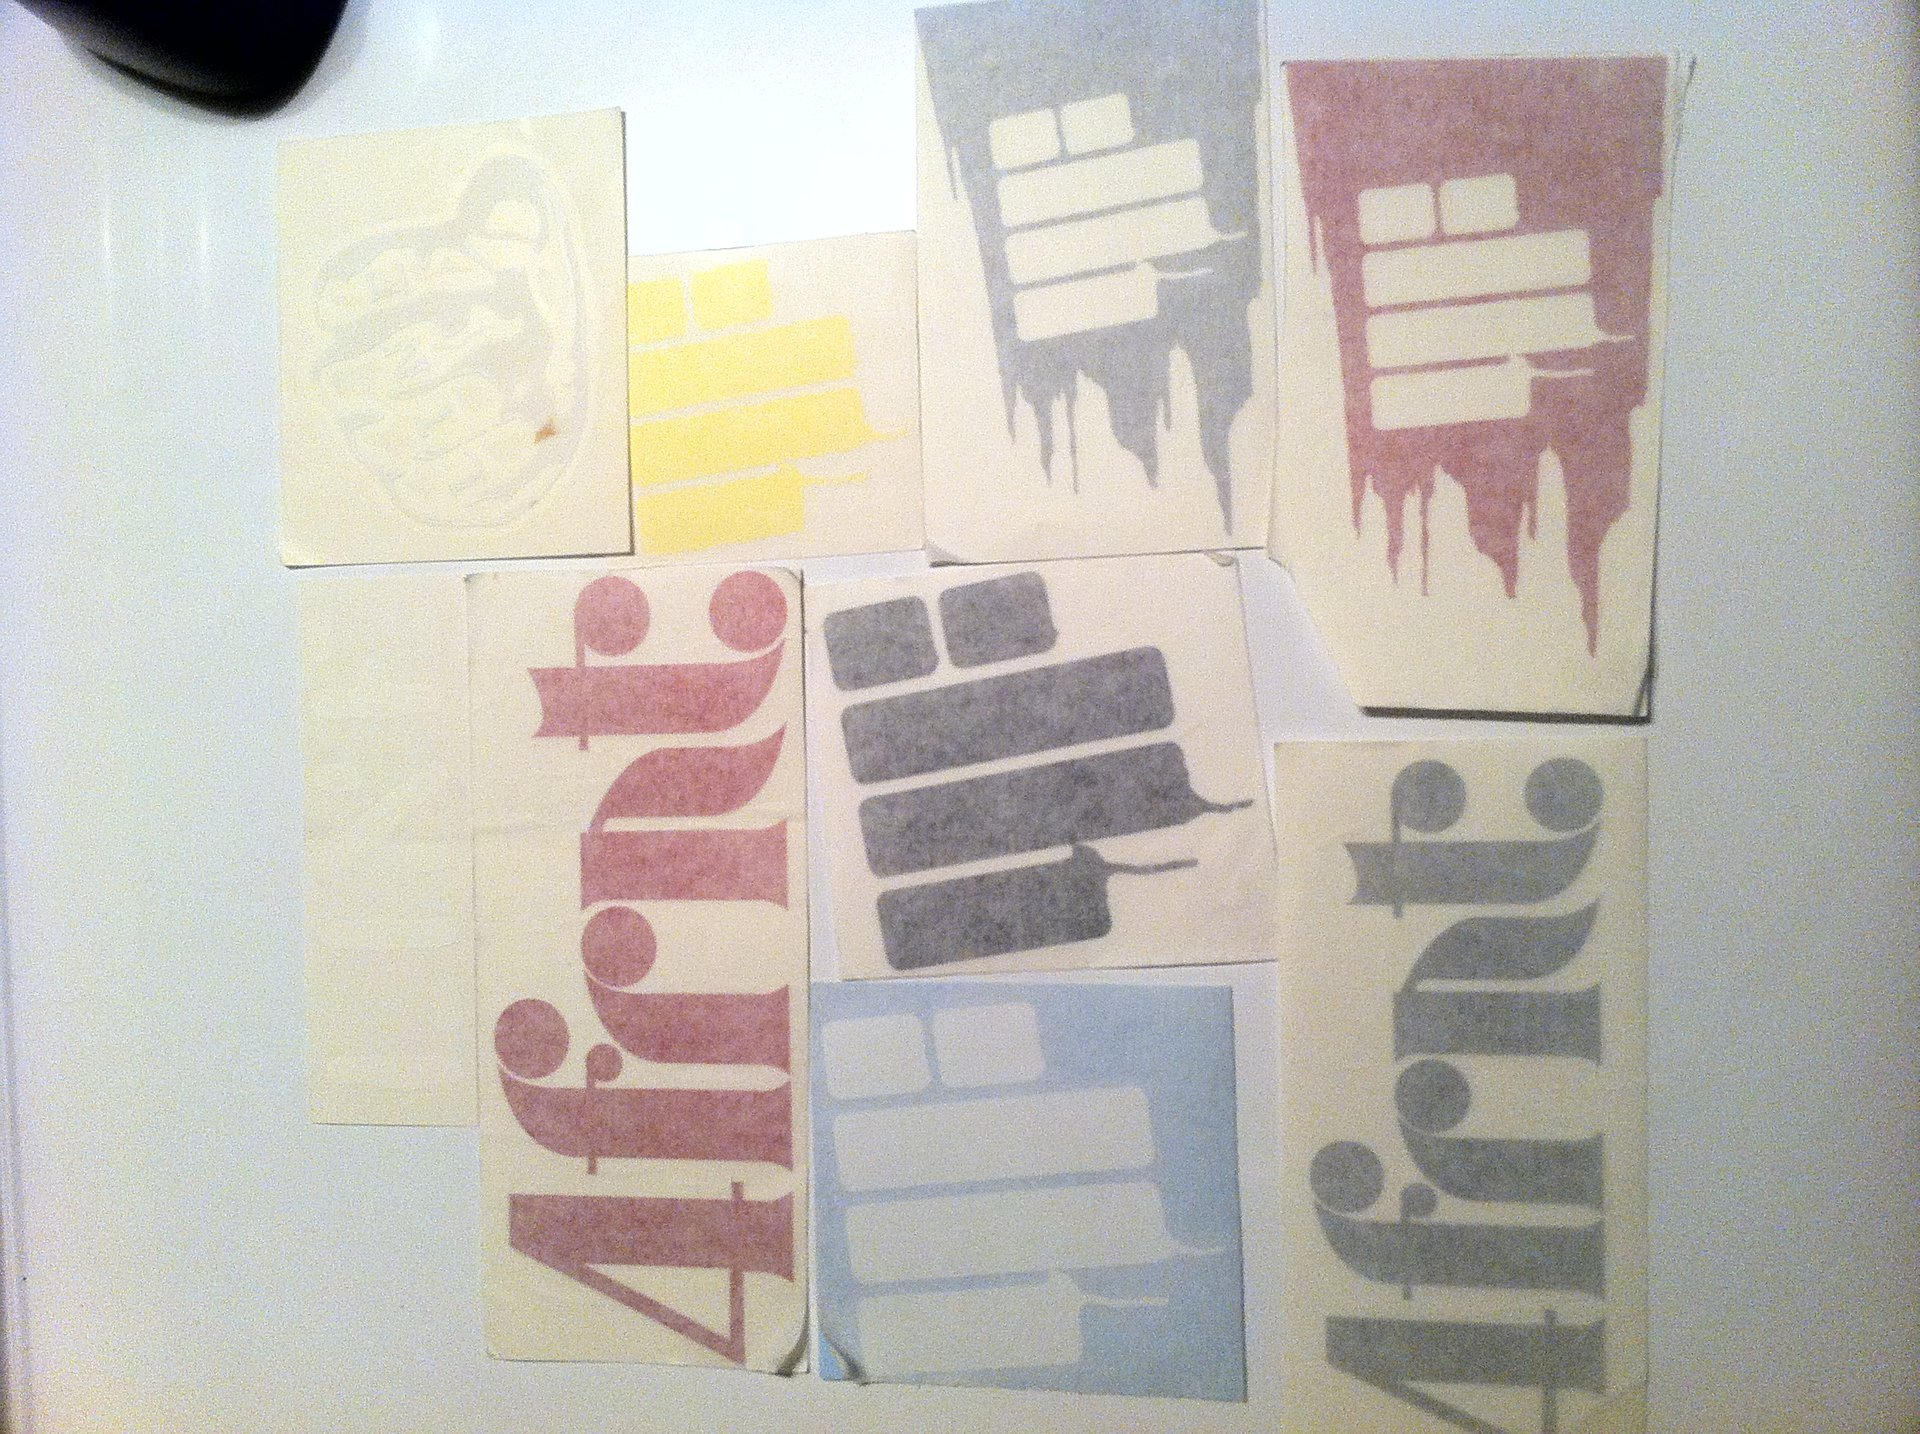 4frnt stickers for sale